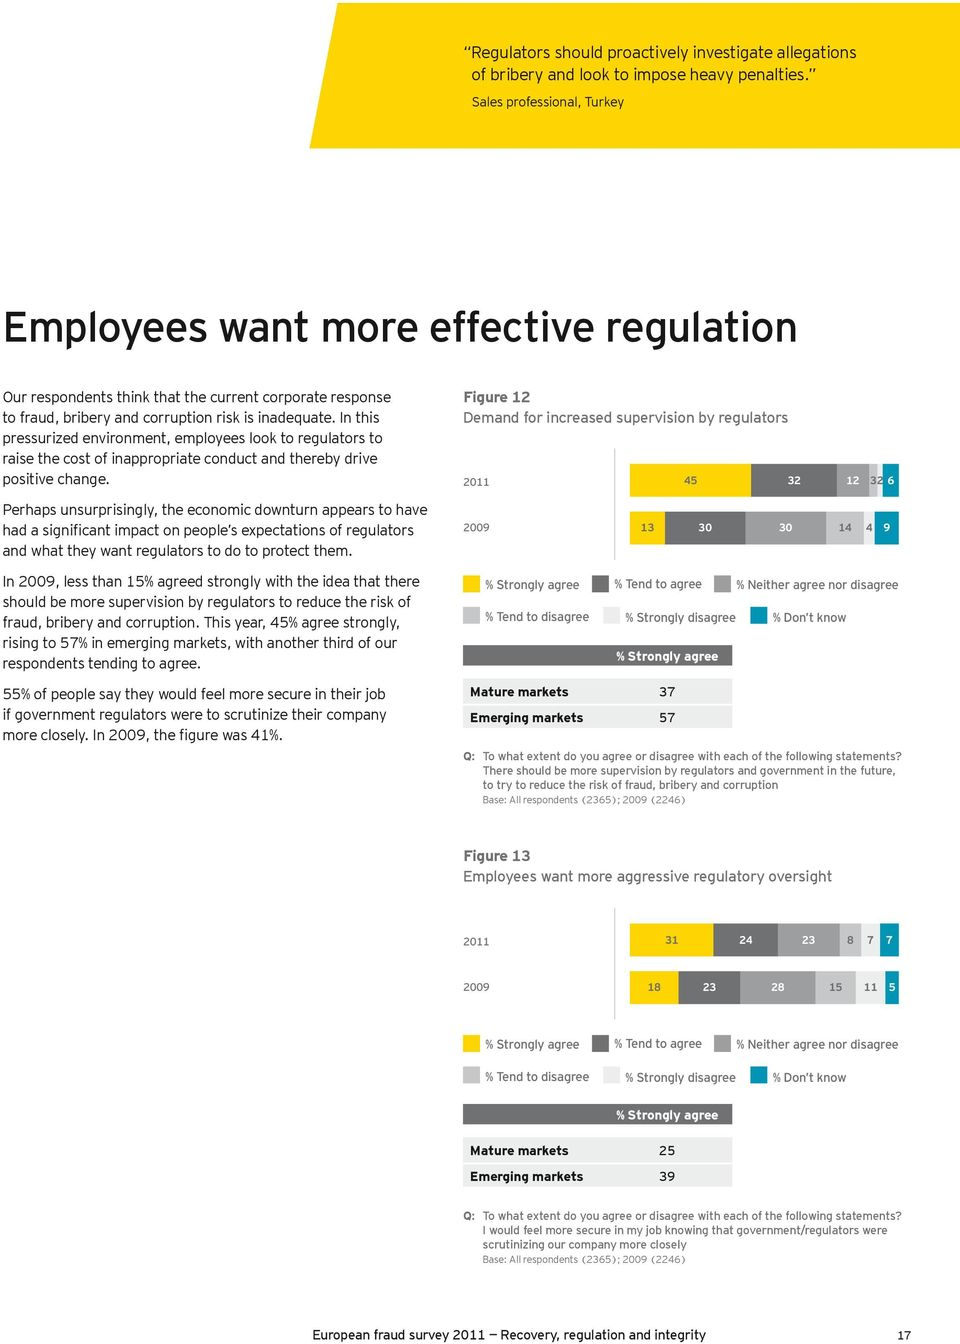 In this pressurized environment, employees look to regulators to raise the cost of inappropriate conduct and thereby drive positive change.